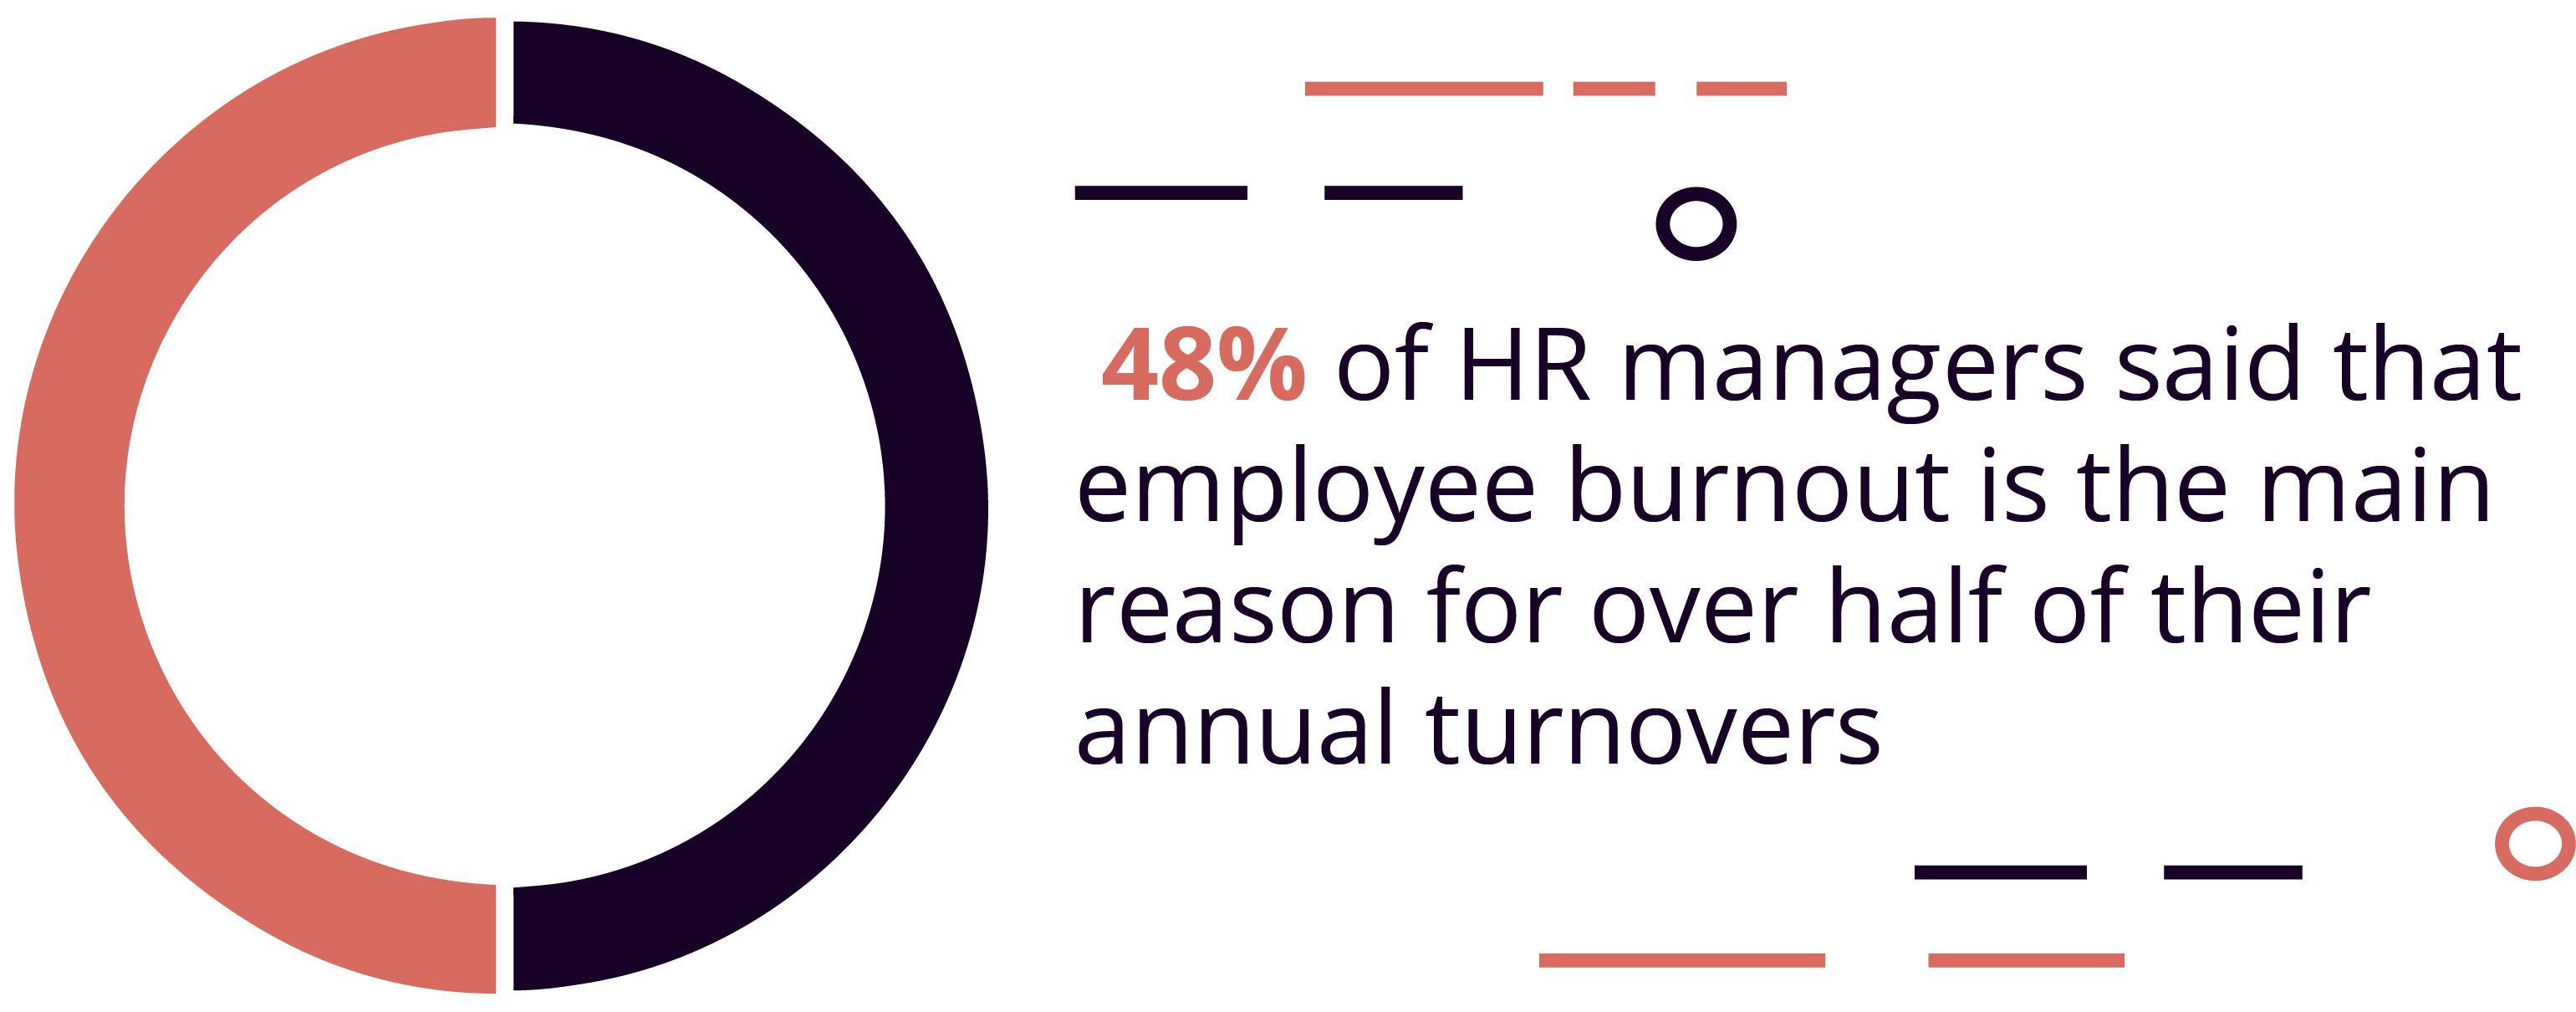 Employee burnout is responsible for over half of workforce turnovers each year